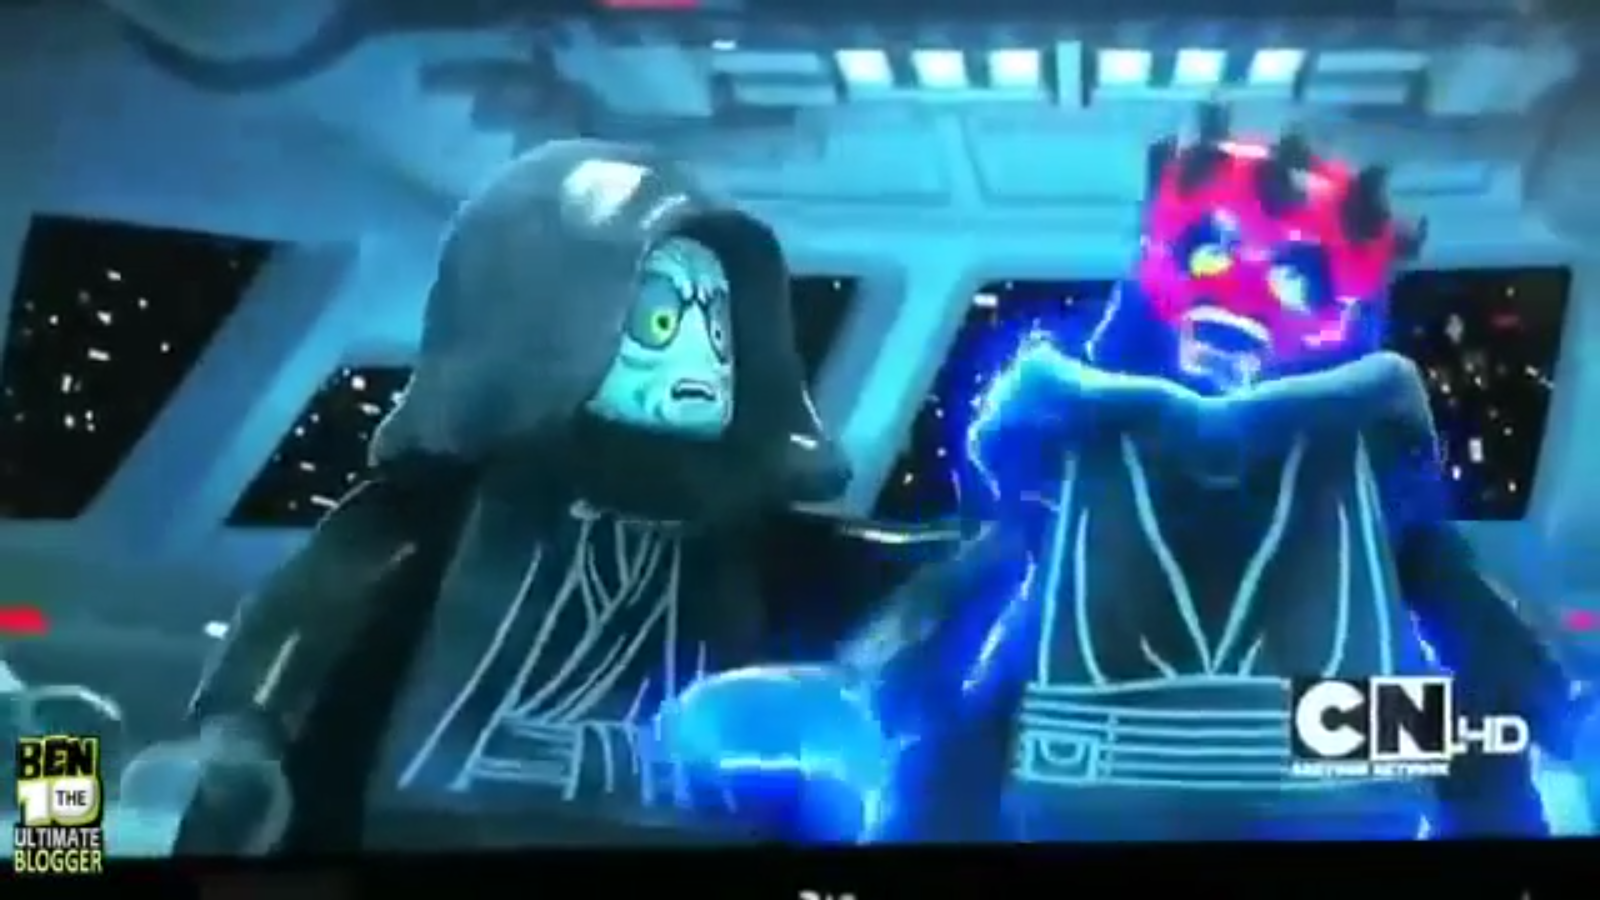 Image - LEGO Star Wars TV series-8.png - Brickipedia, the LEGO Wiki